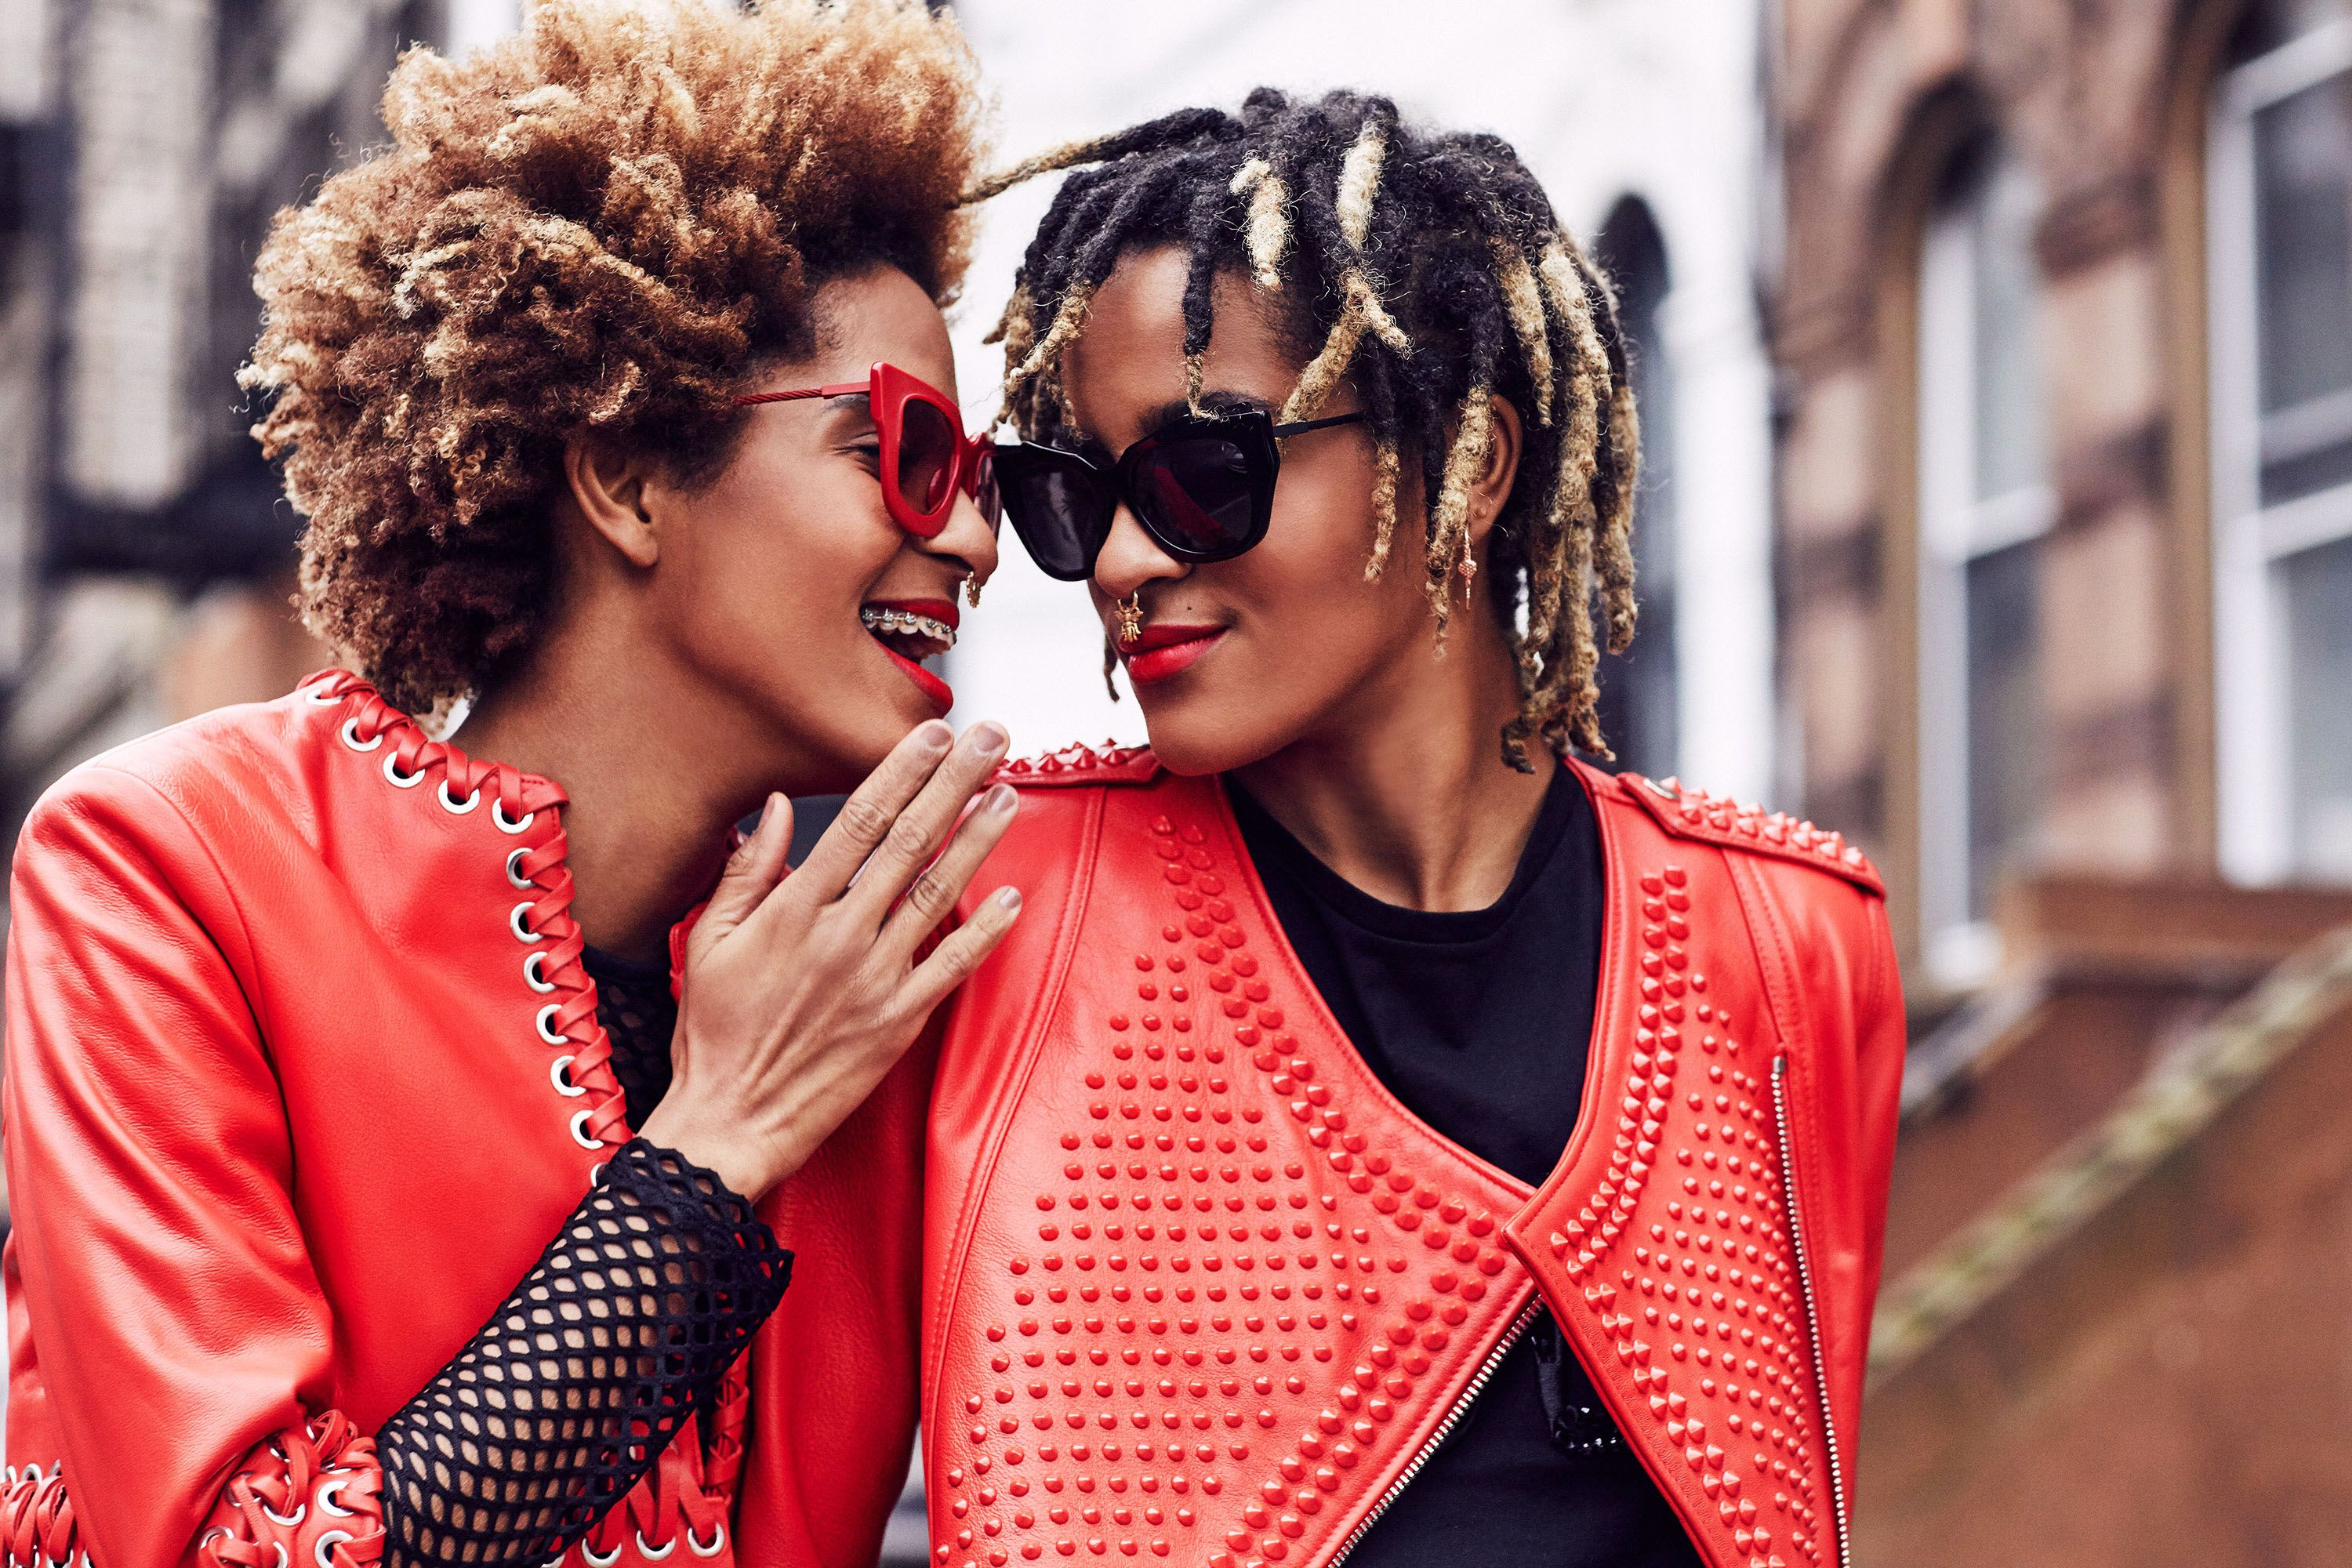 f6c88c100a1 Coco and Breezy Makeup Routine - A Day in the Life of Eyewear Designers Coco  and Breezy